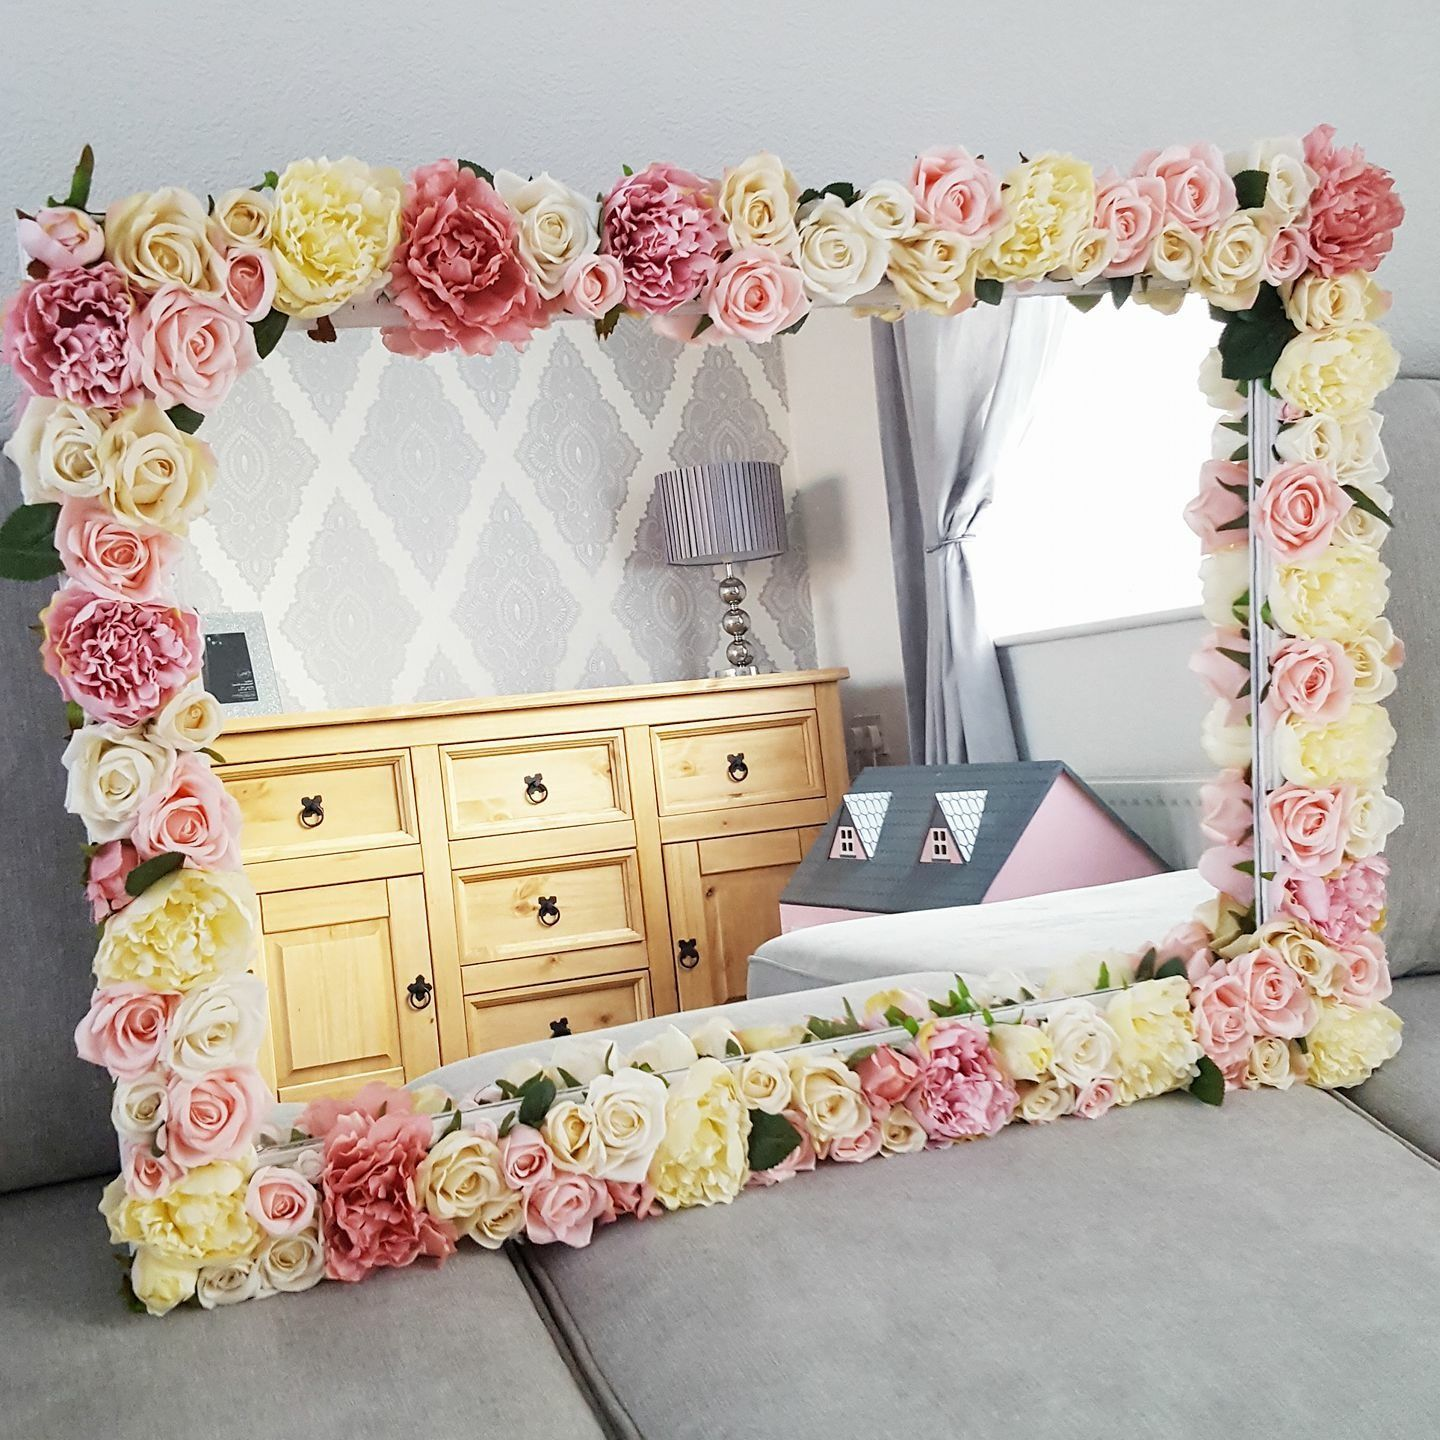 Pin By Dorothy Bryant On Kylie S Room In 2020 Diy Flower Mirror Diy Floral Mirror Flower Mirror